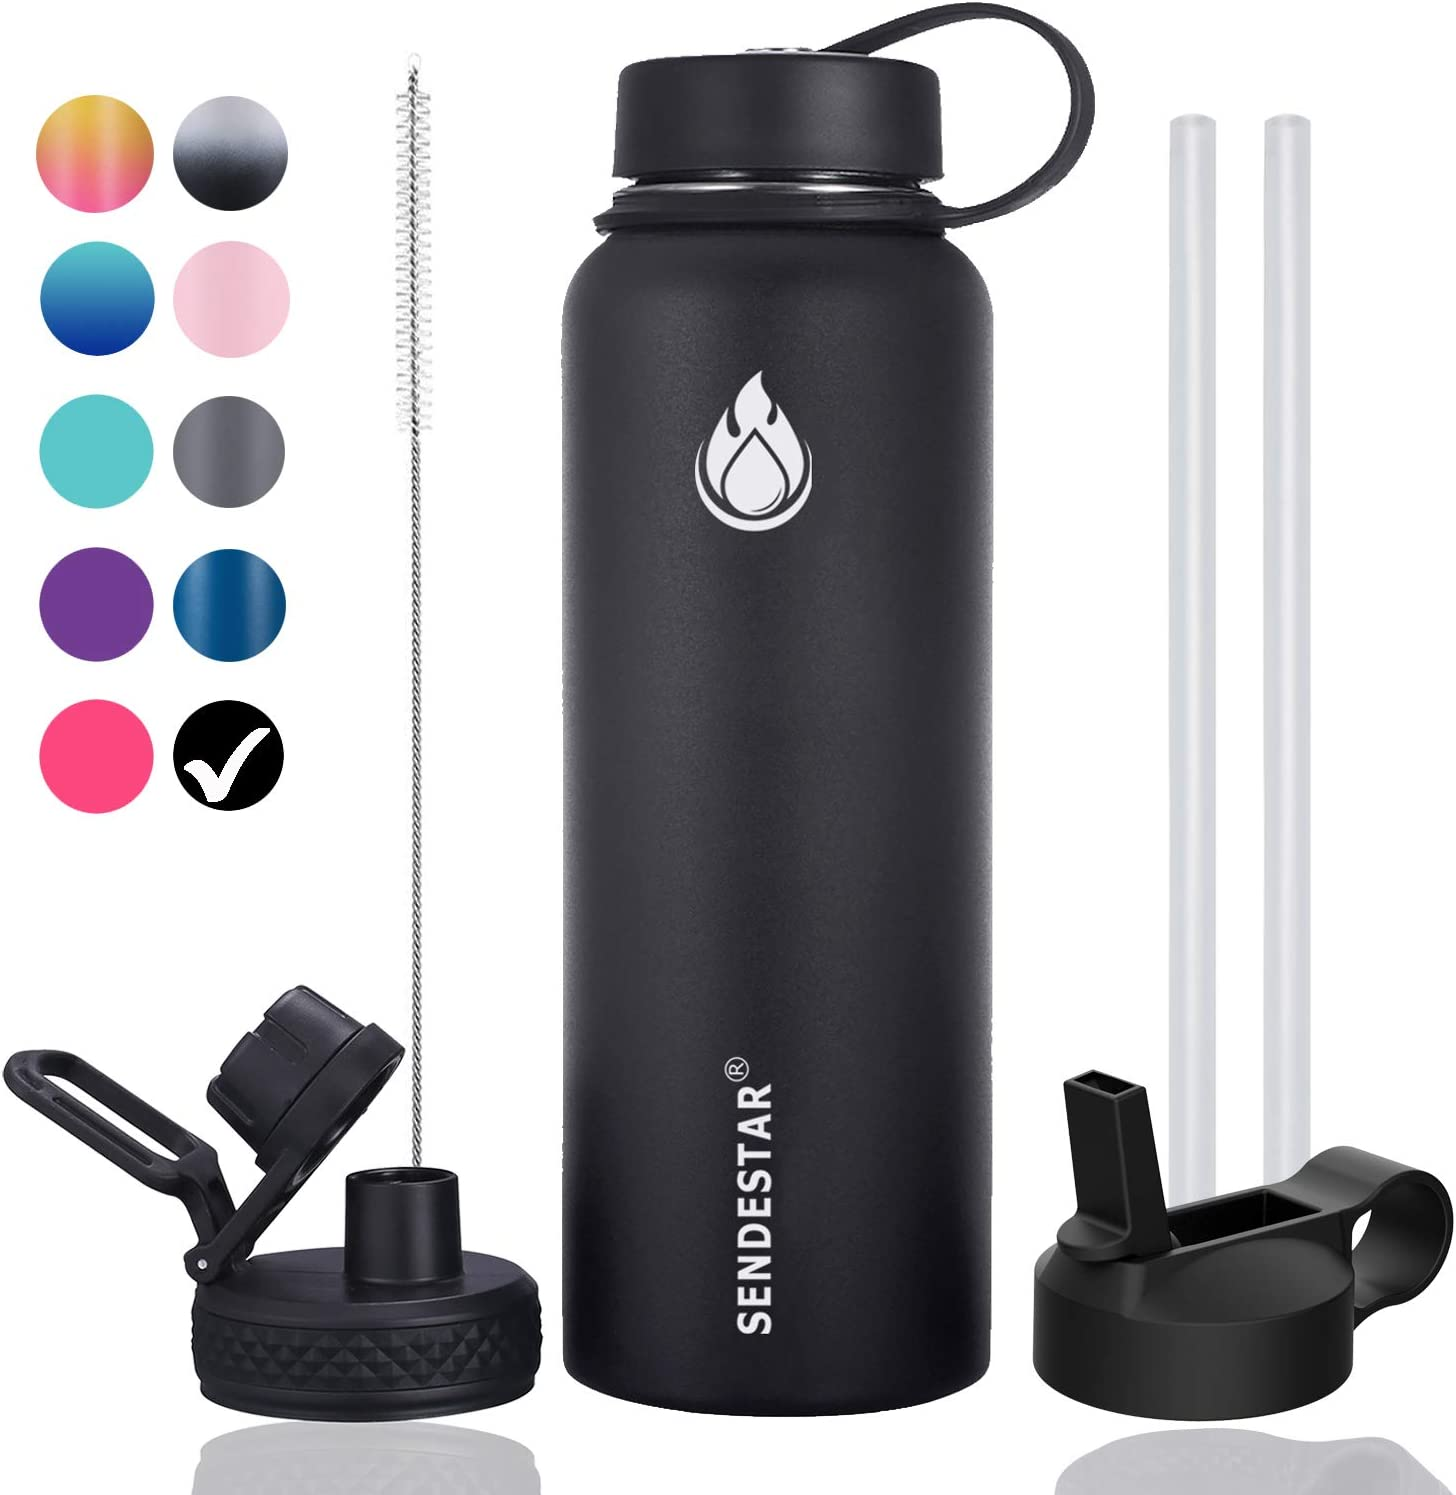 SENDESTAR 32 oz Double Wall Vacuum Insulated Leak Proof Stainless Steel Sports Water Bottle—Wide Mouth with Straw Lid & Flex Cap & Spout Lid (Black)